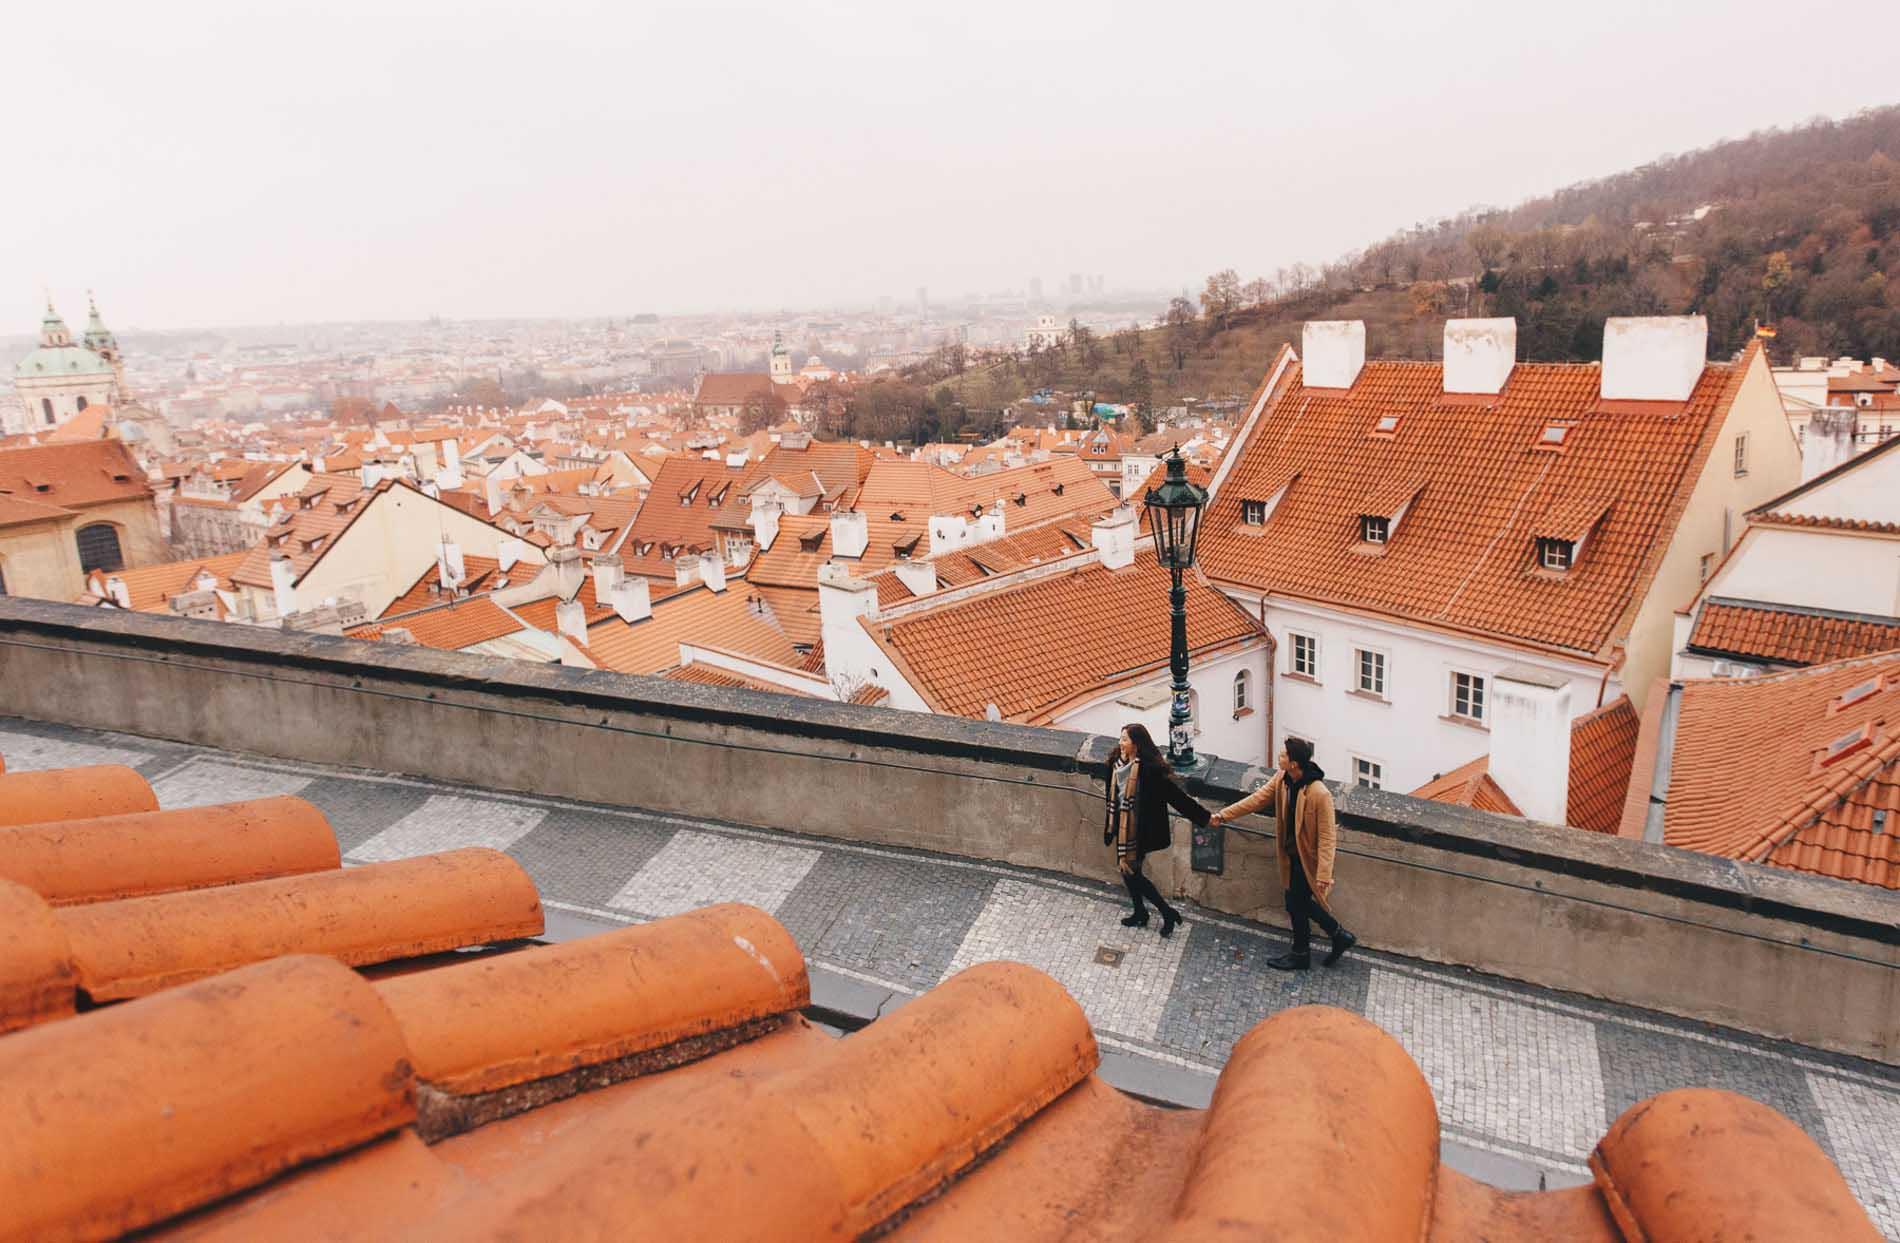 20 Photos to Inspire You to Visit Prague